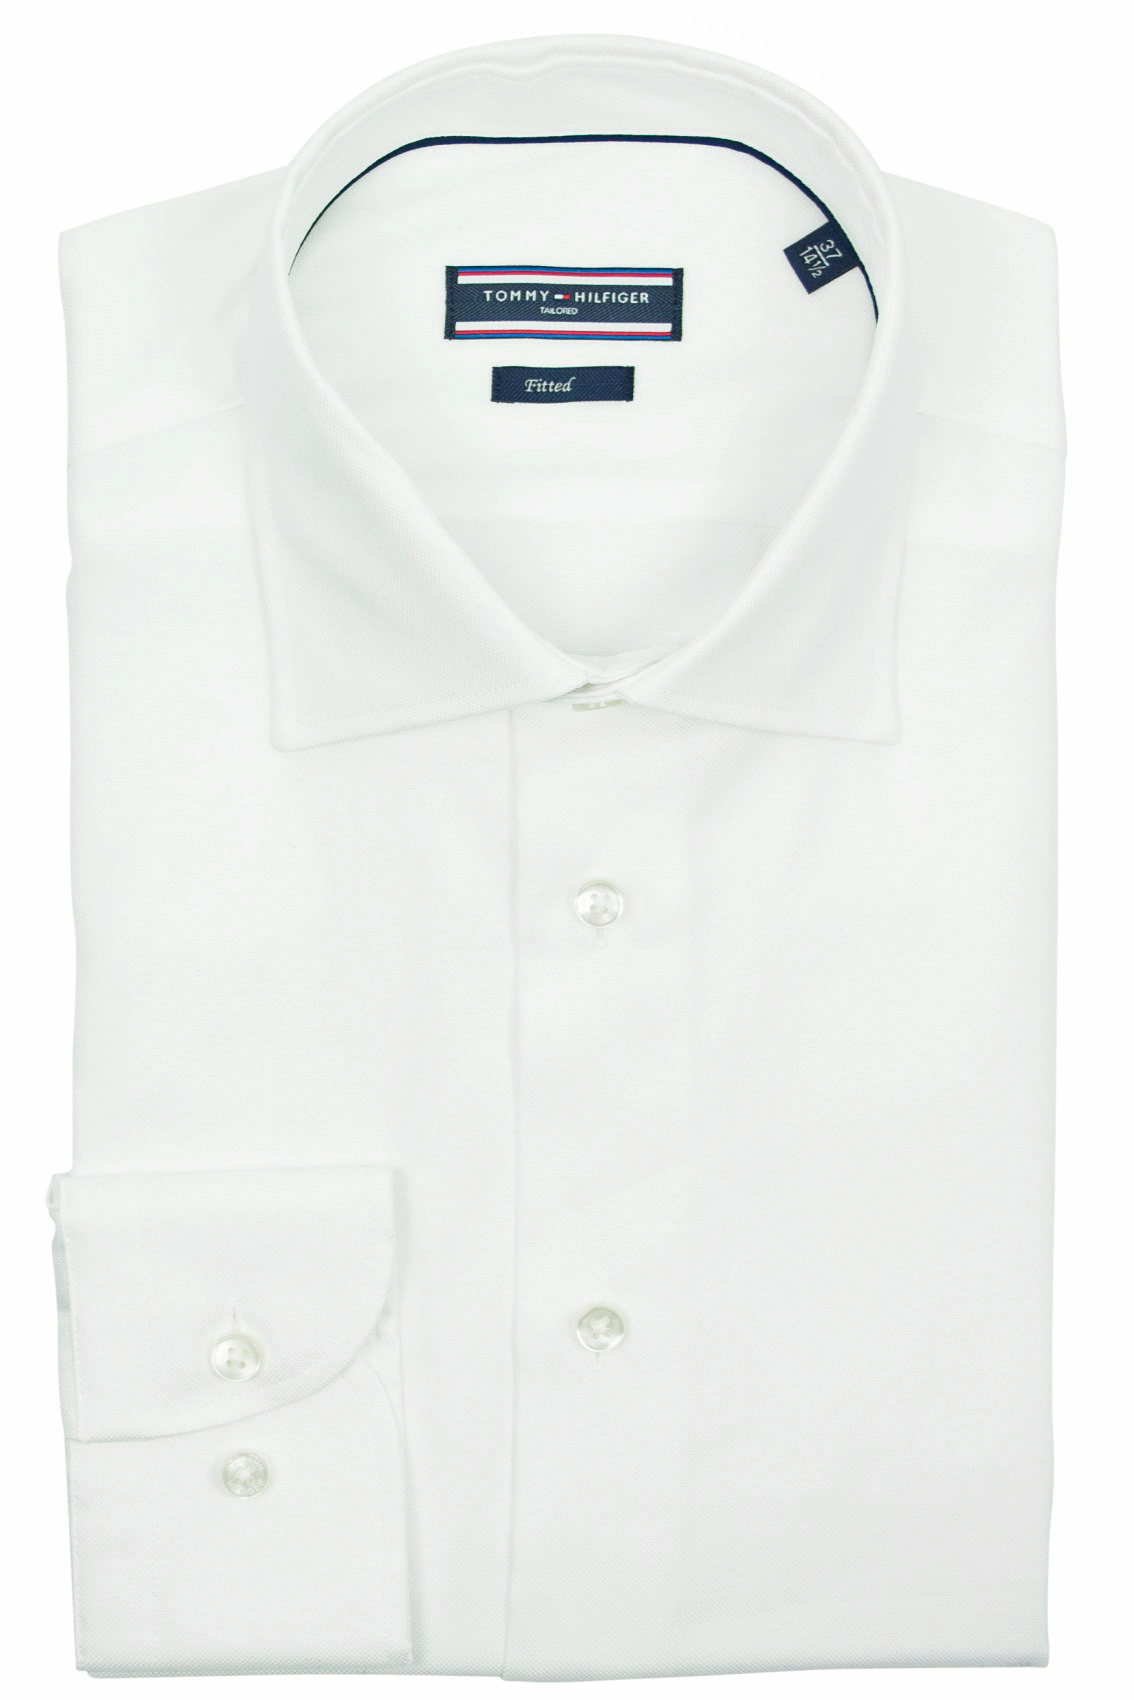 Tommy Hilfiger Tailored shirt wit katoen